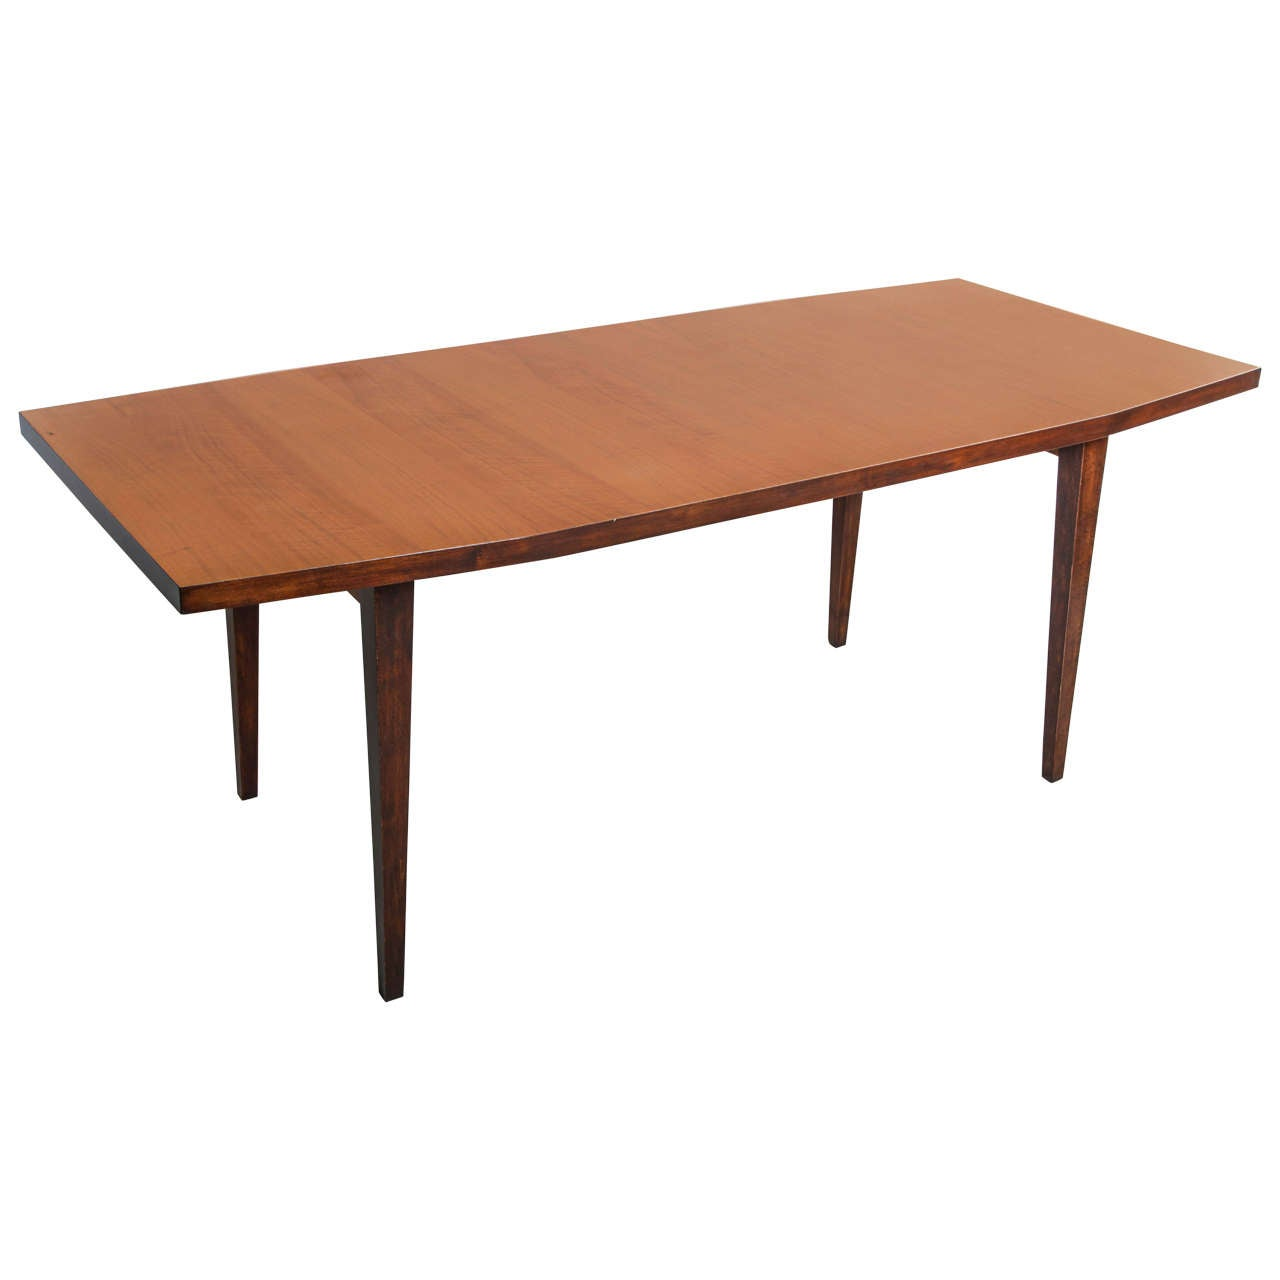 Long Dining Tables For Sale: Extra Long Dining Or Conference Table By Kondor Möbel